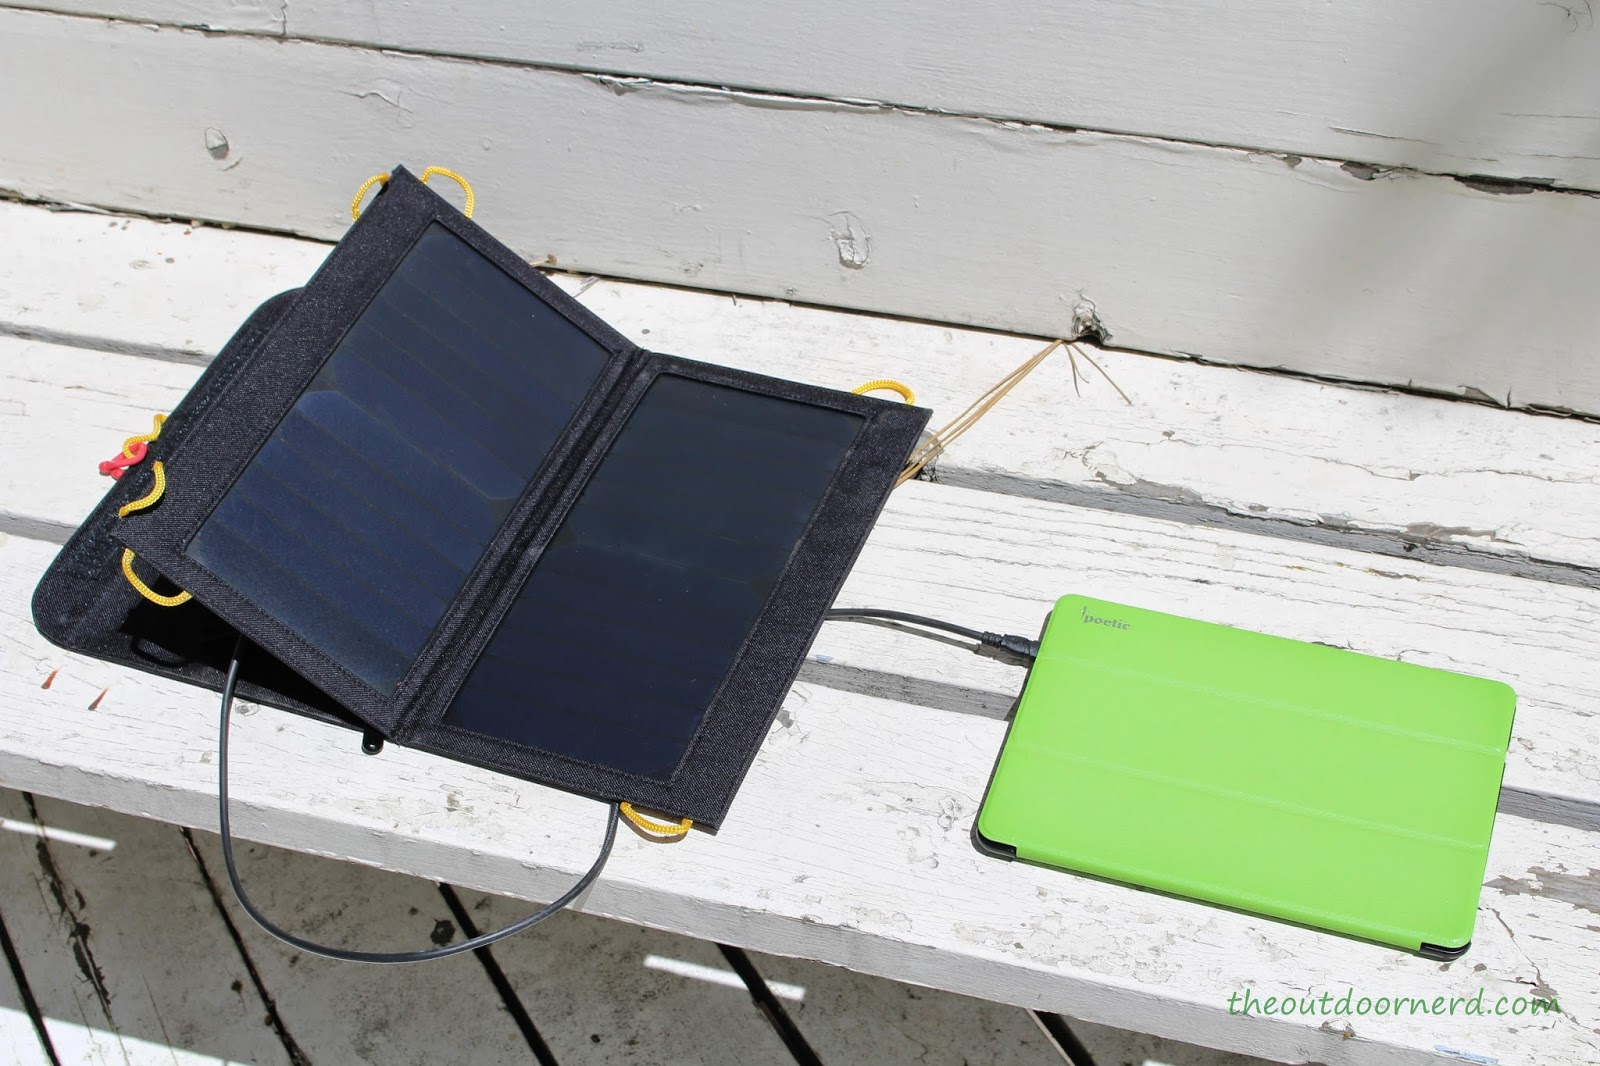 Levin Sol-Wing 13W Solar USB Charger: Test 2: Kindle Fire HDX Tablet